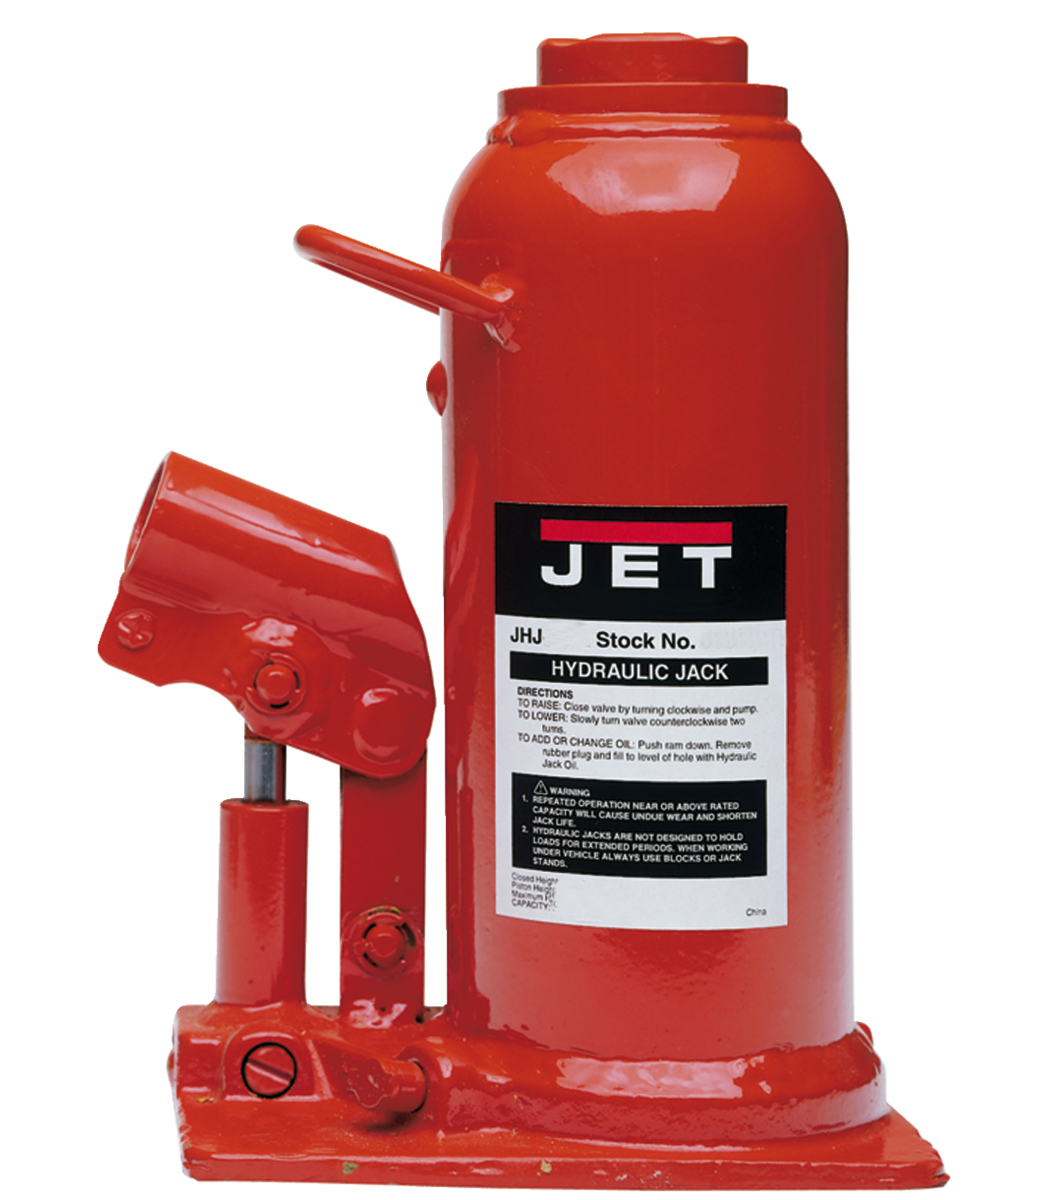 JHJ-60, 60-Ton Hydraulic Bottle Jack